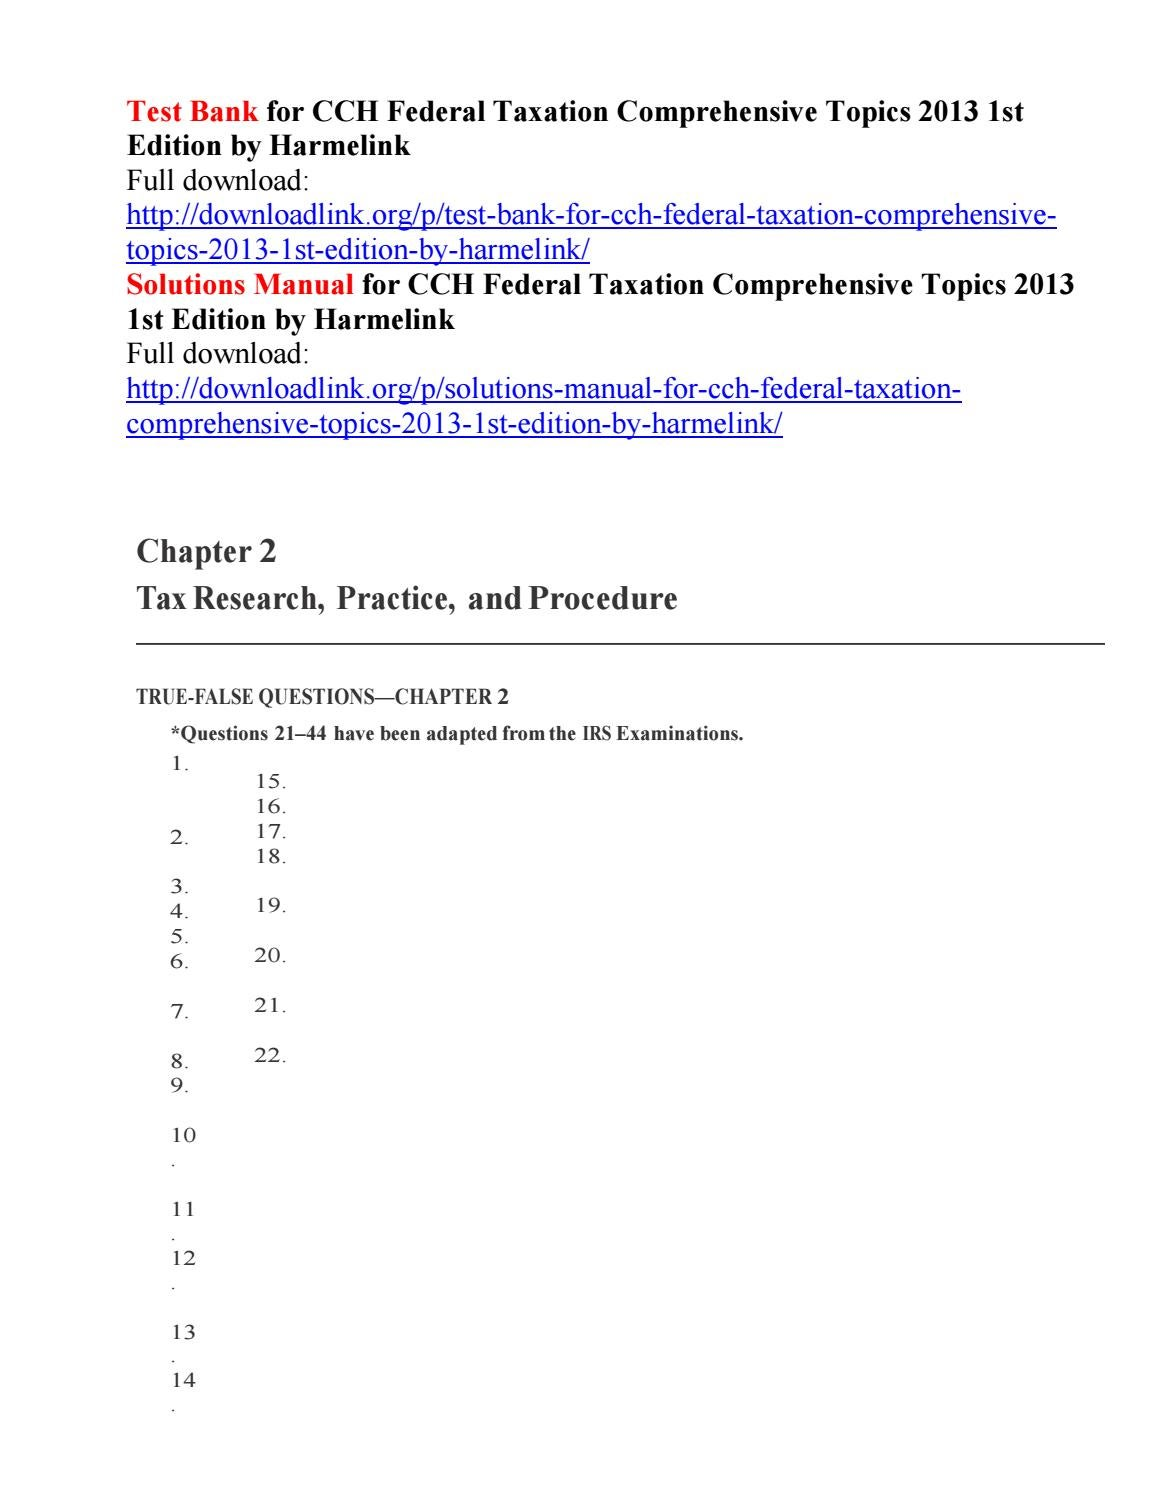 Test Bank For Cch Federal Taxation Comprehensive Topics